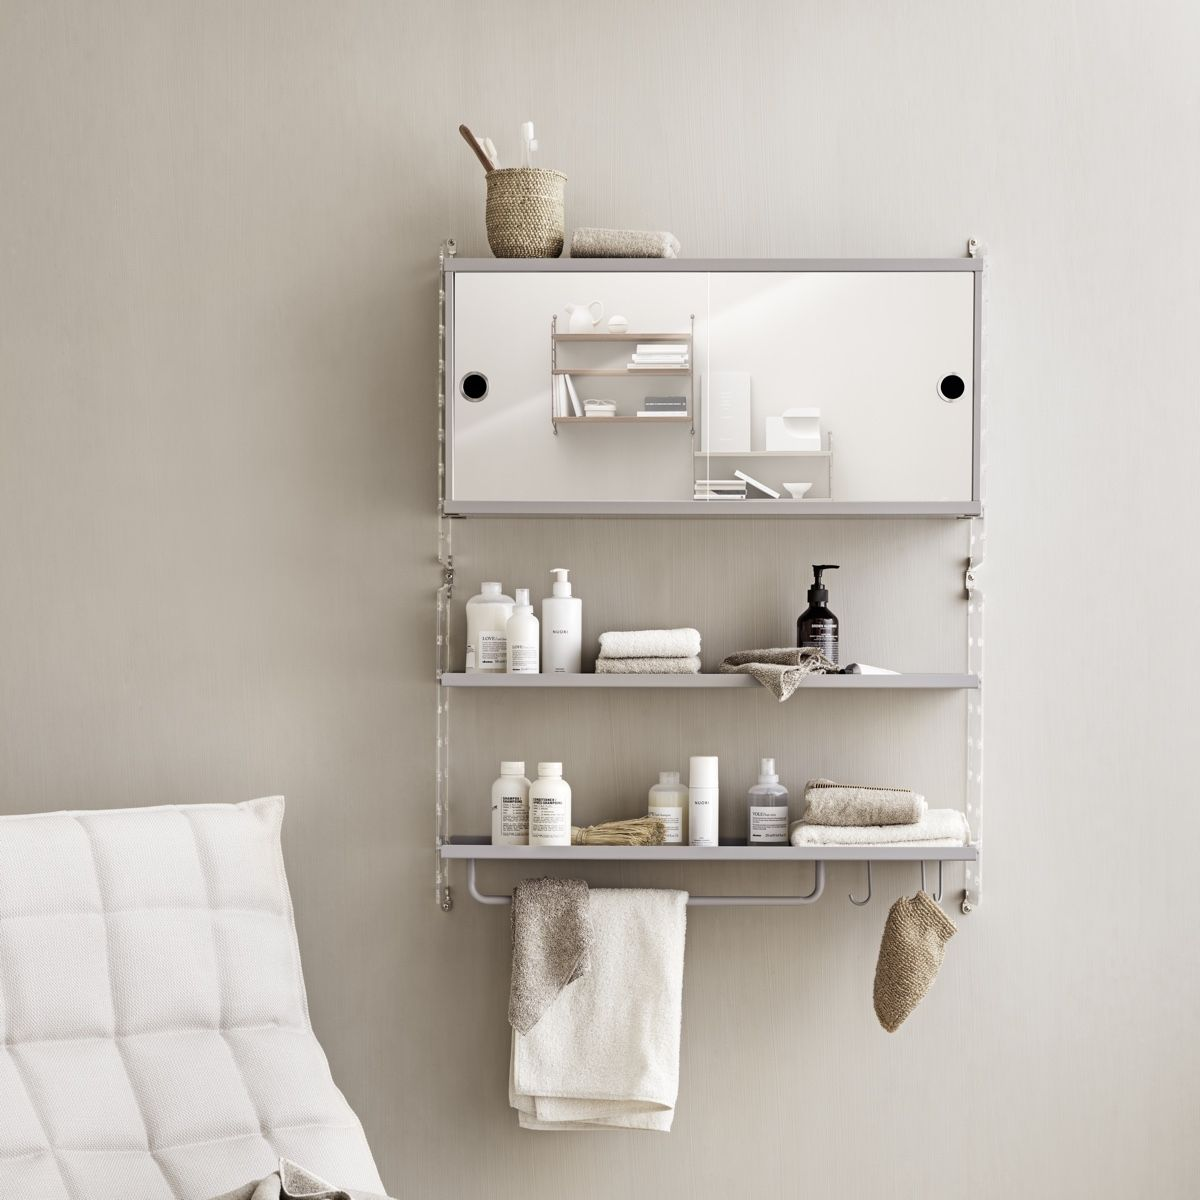 String Metal Shelves 78 x 20cm beige and bathroom cabinet with plexi end panels